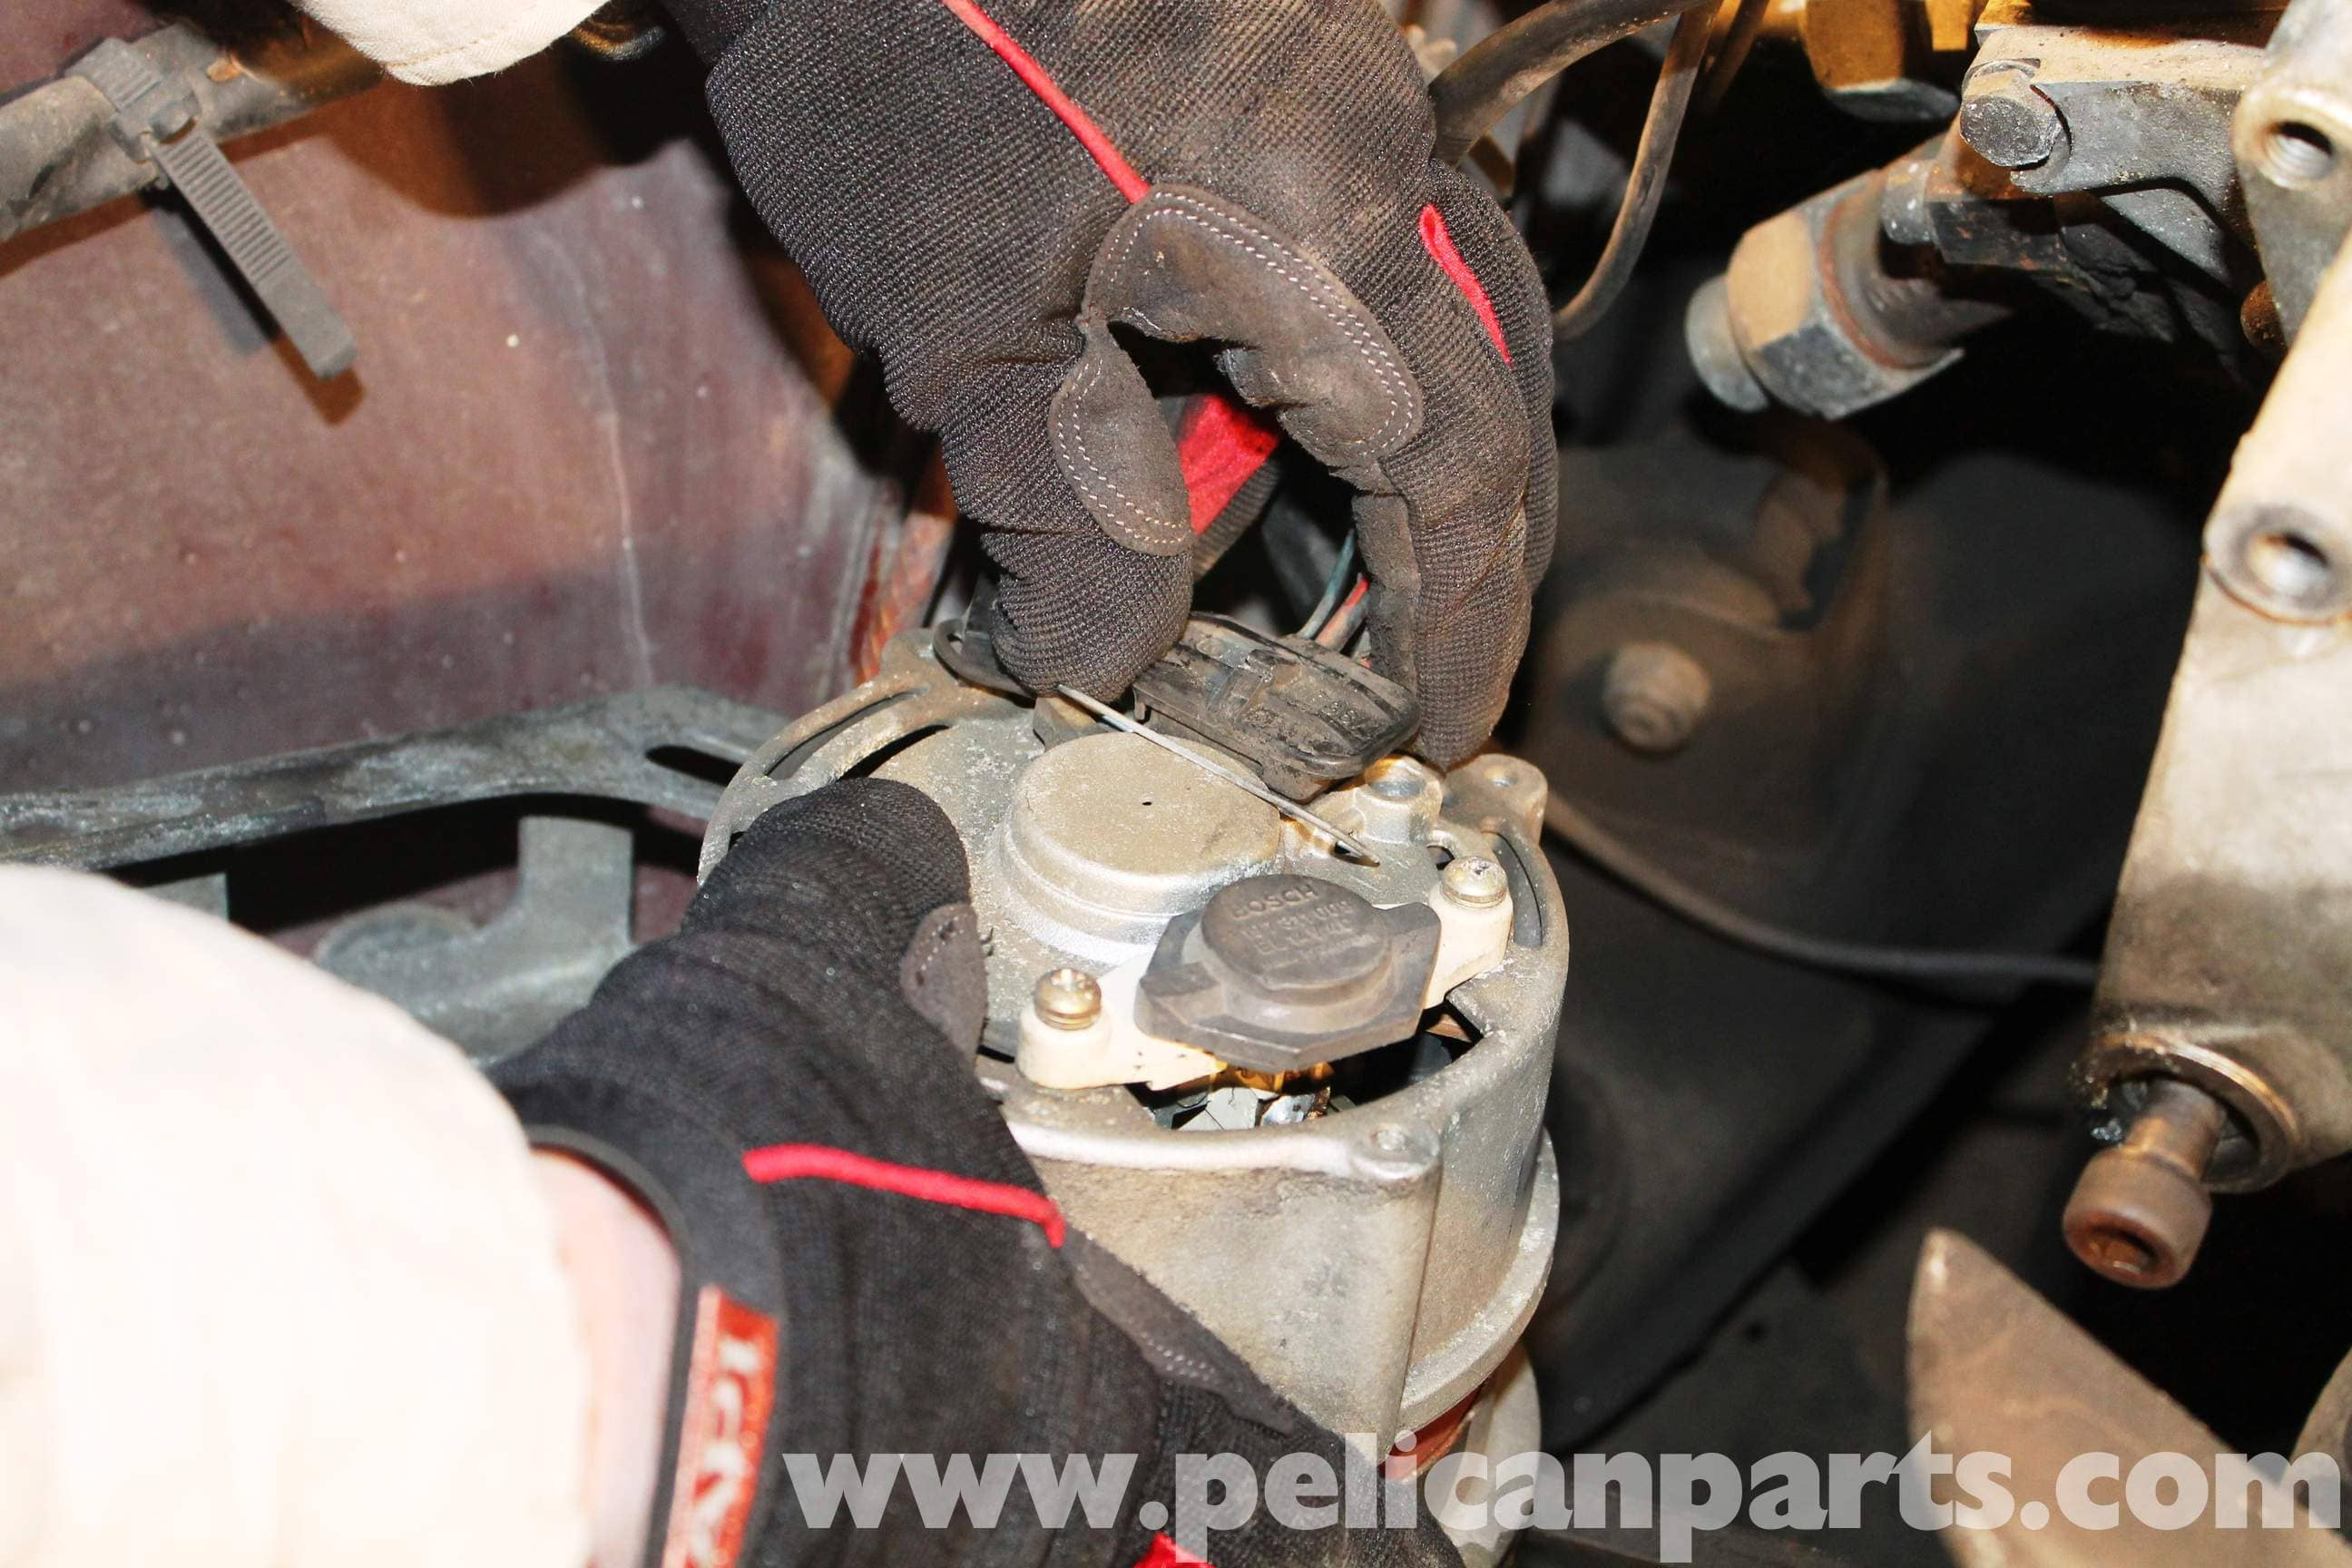 Mercedes benz r107 alternator replacement 1972 1986 for Mercedes benz alternator repair cost